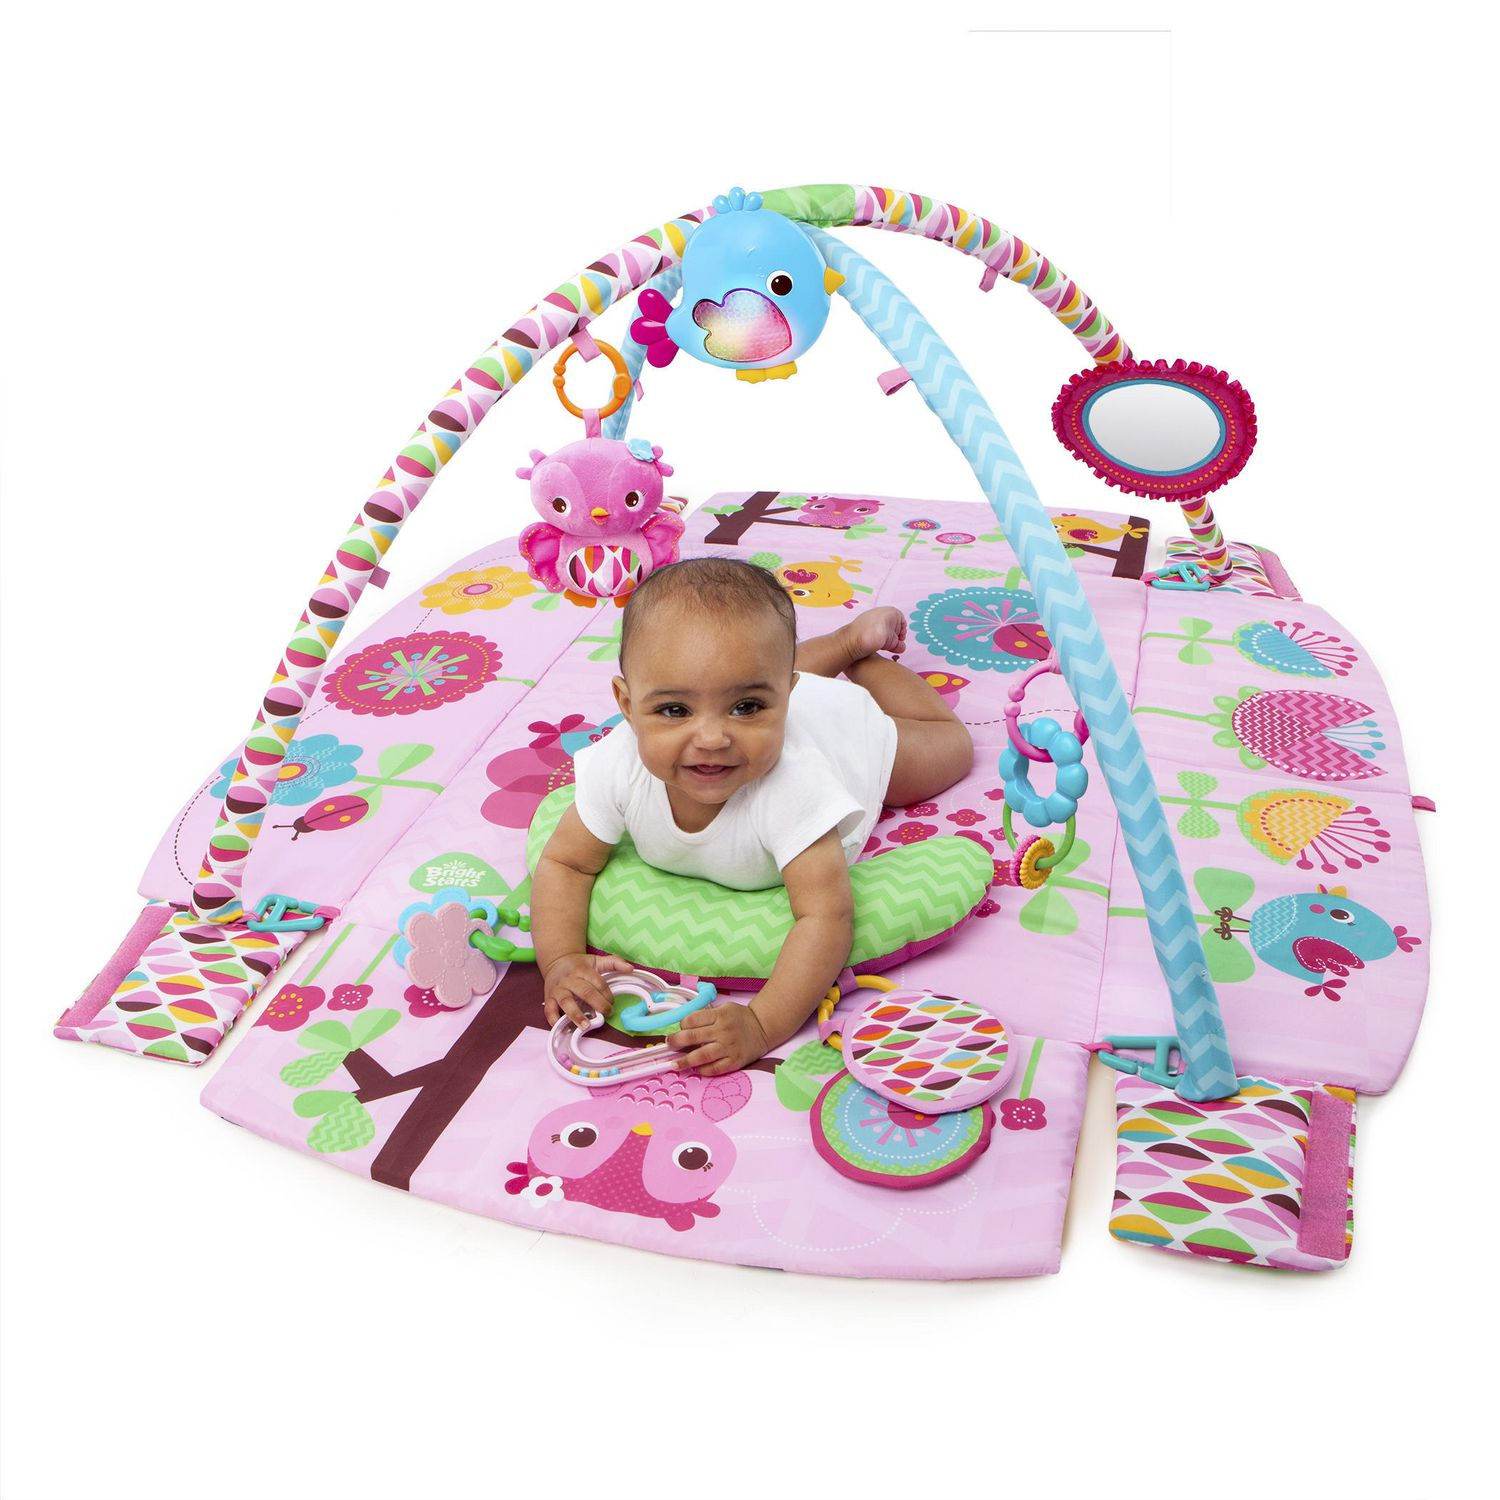 Bright Starts™ Sweet Songbirds™ Baby s Play Place™ Activity Gym